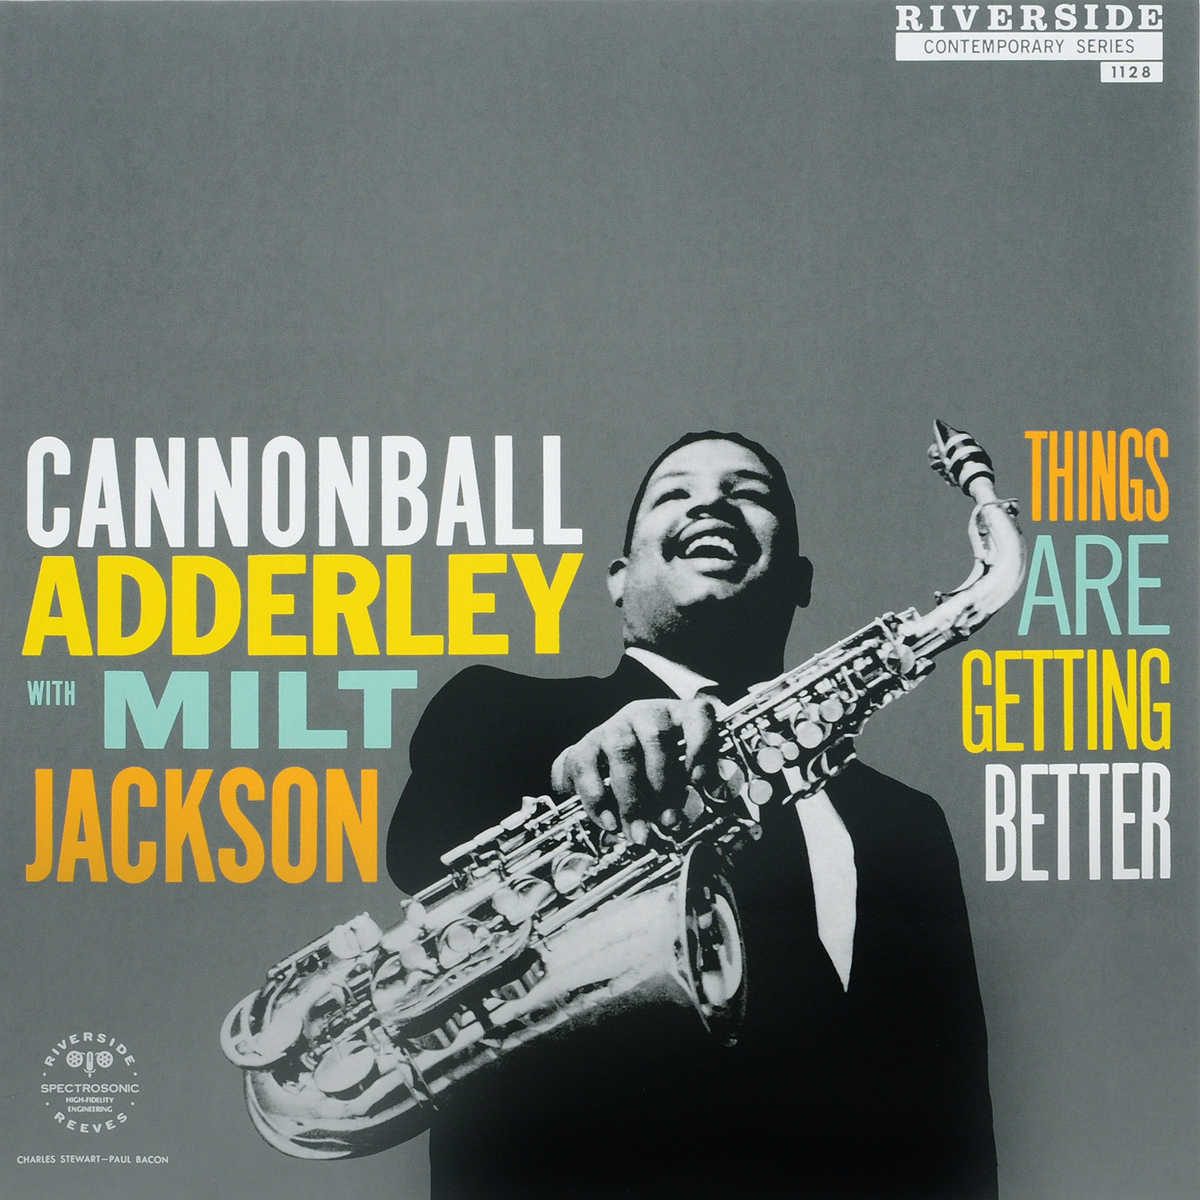 Кэннонболл Эдерли,Милт Джексон Cannonball Adderley With Milt Jackson. Things Are Getting Better (LP) кэннонболл эдерли милт джексон cannonball adderley with milt jackson things are getting better lp